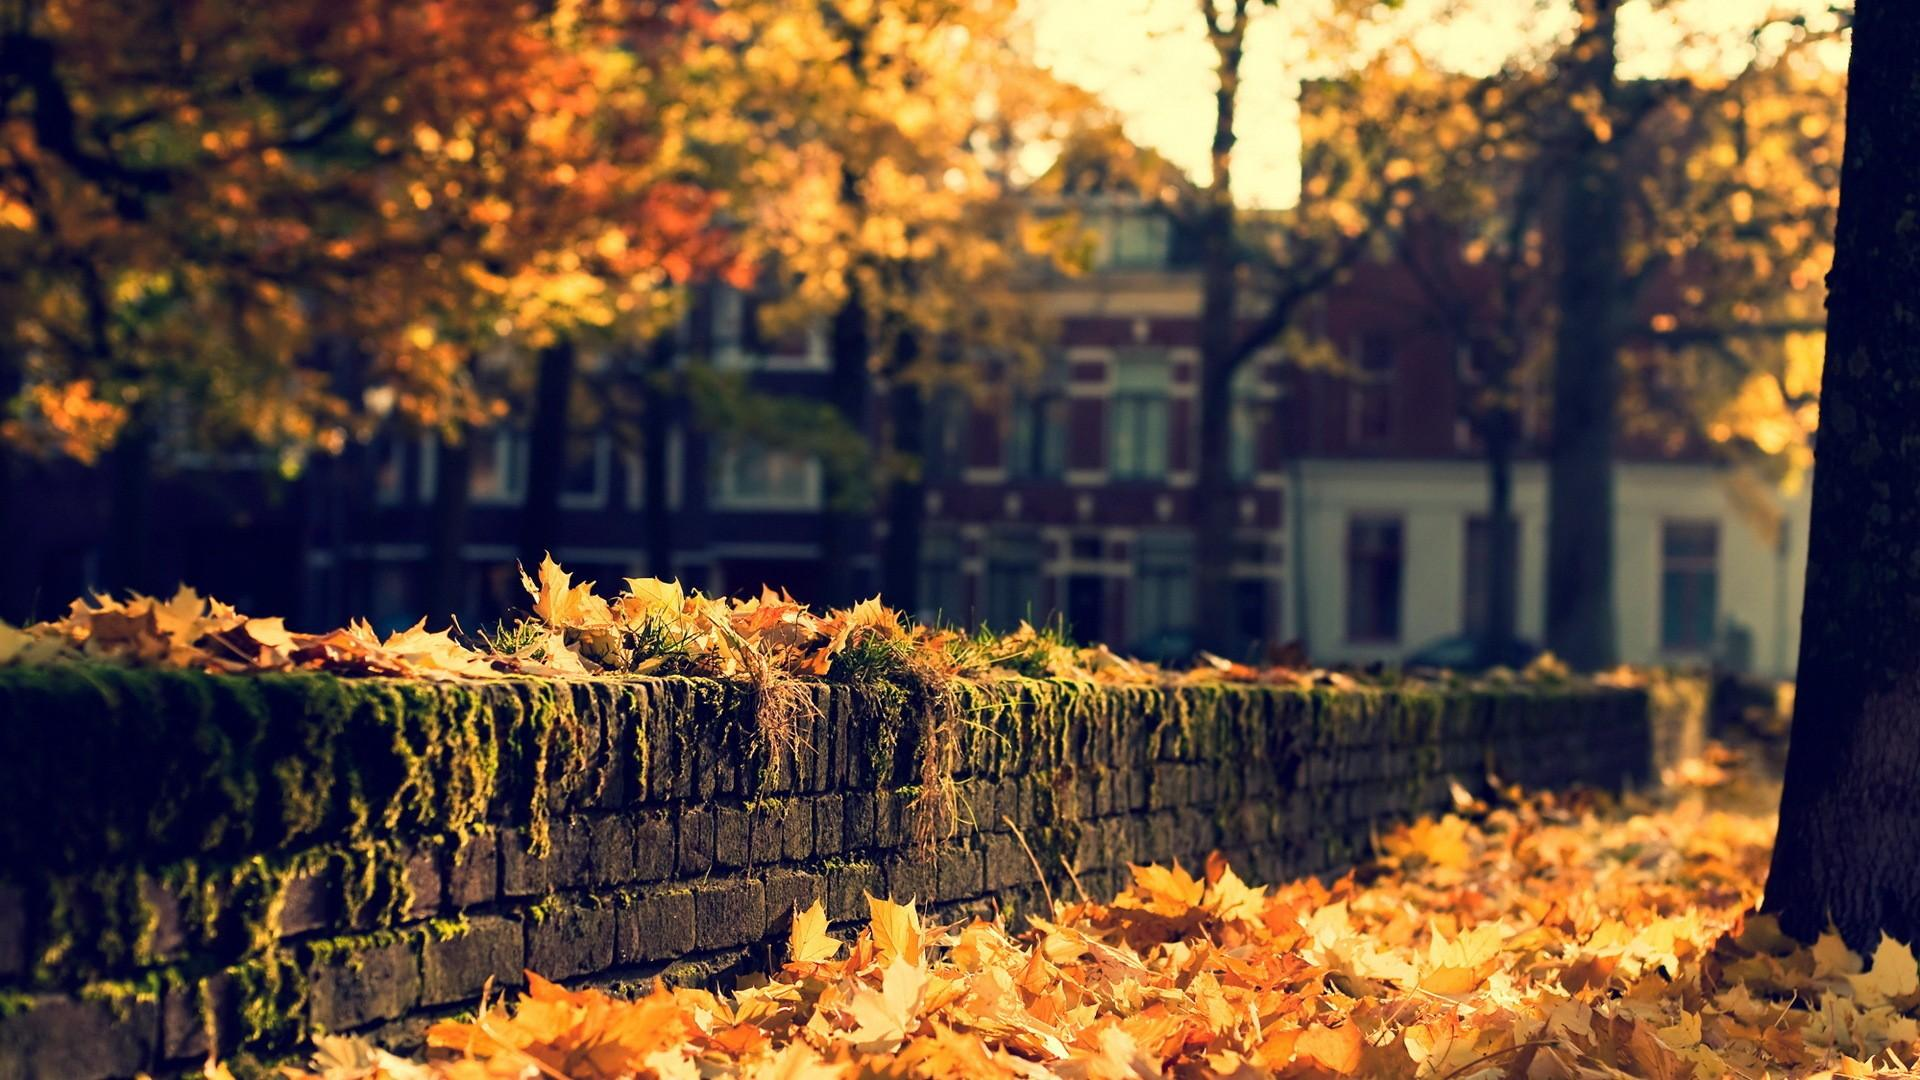 nature, Leaves, Autumn, Fall, Seasons, Trees, Wall, Stone